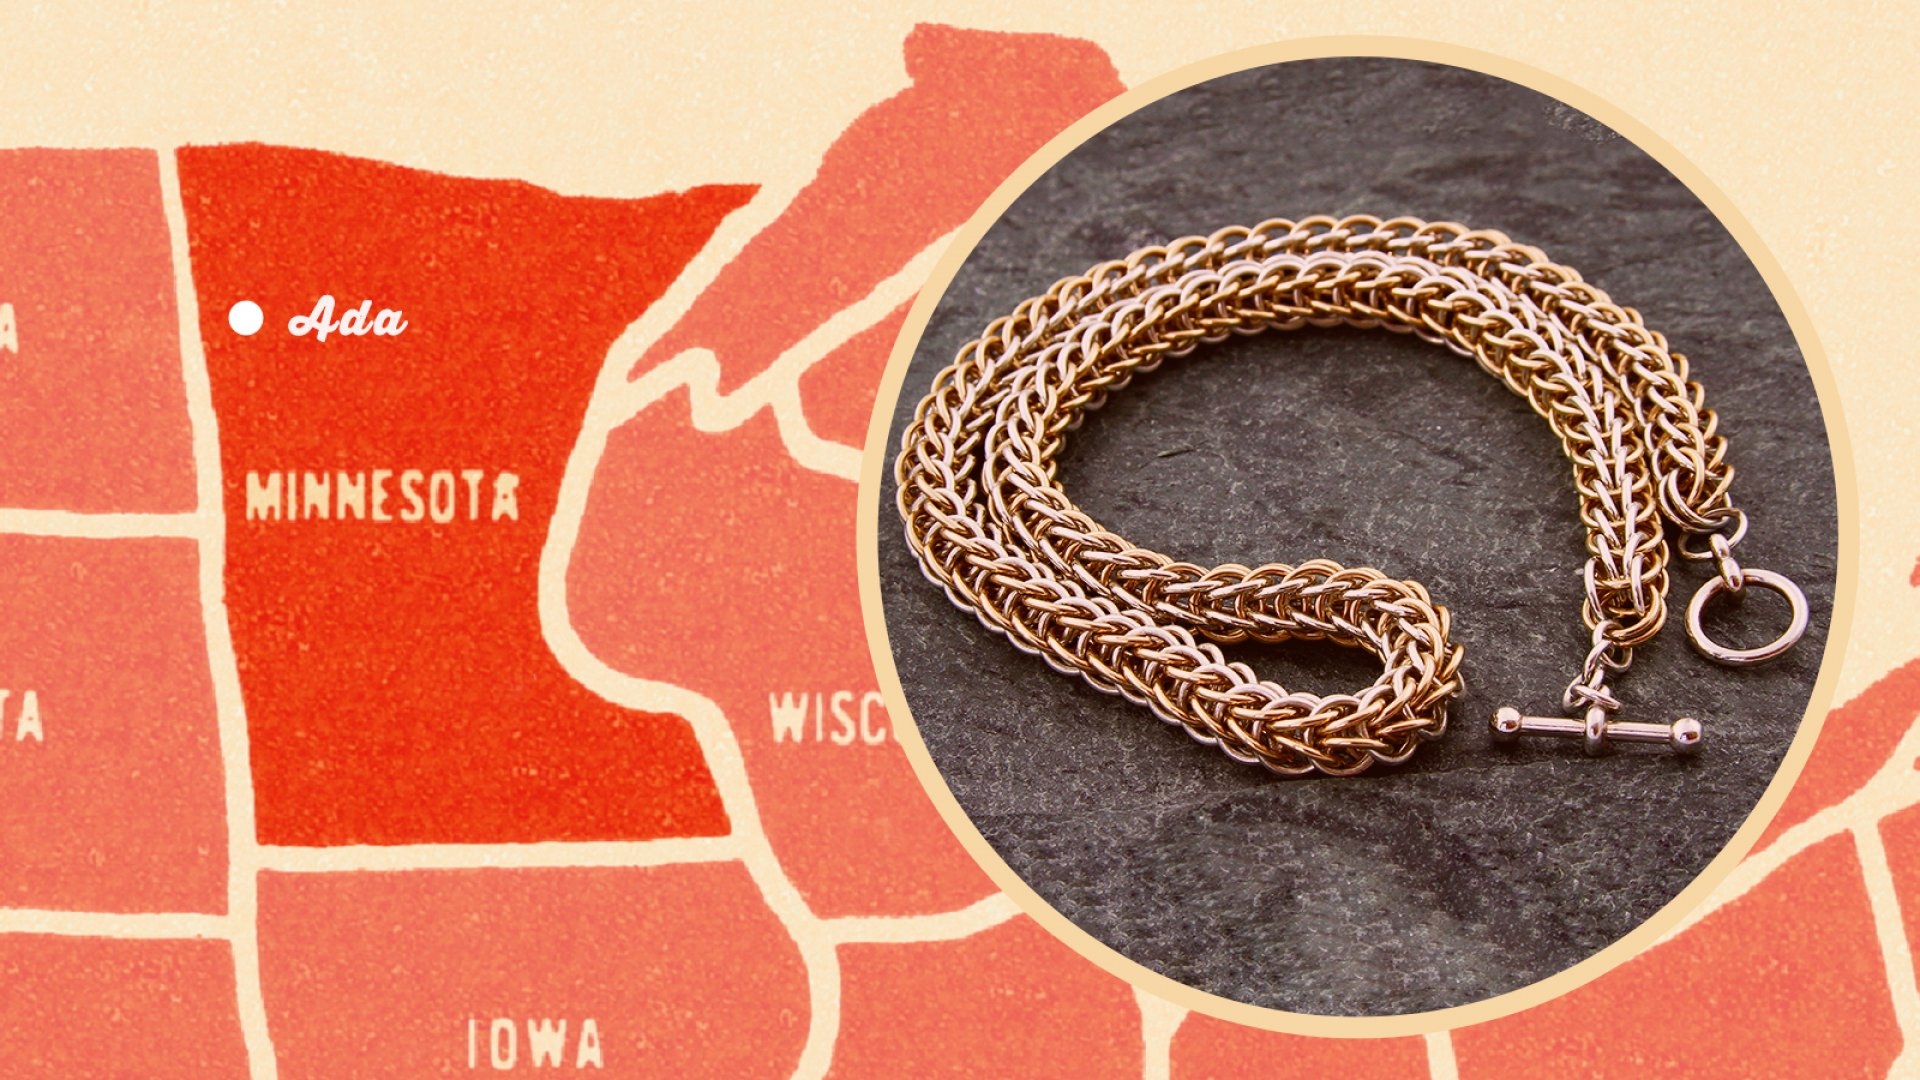 A Tiny Minnesota Town Now Has Fast Wi-Fi and New Jobs, All Thanks to This Chain Mail Startup